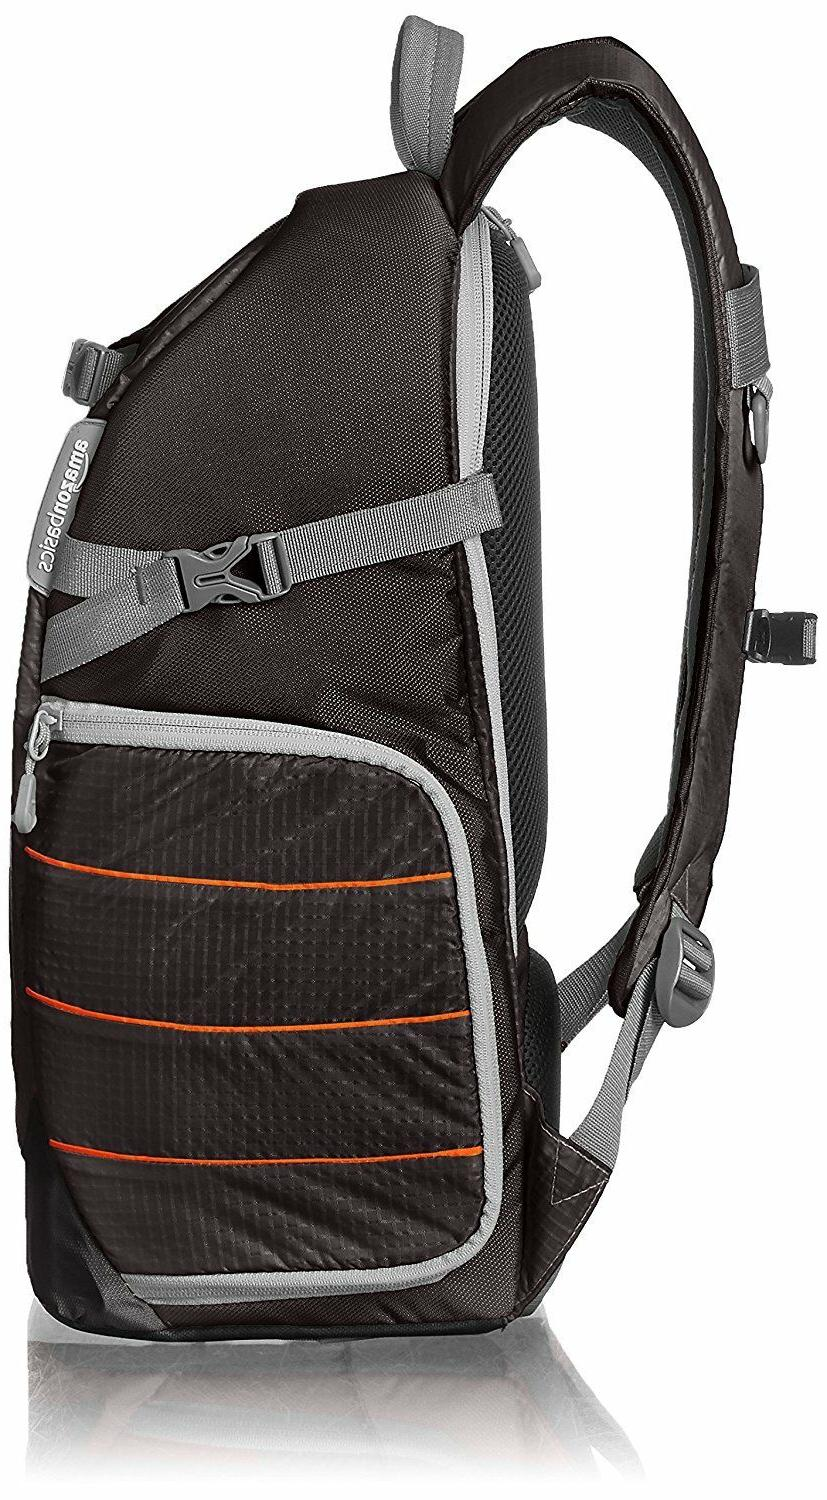 AmazonBasics Accessories Lenses Backpack Bag